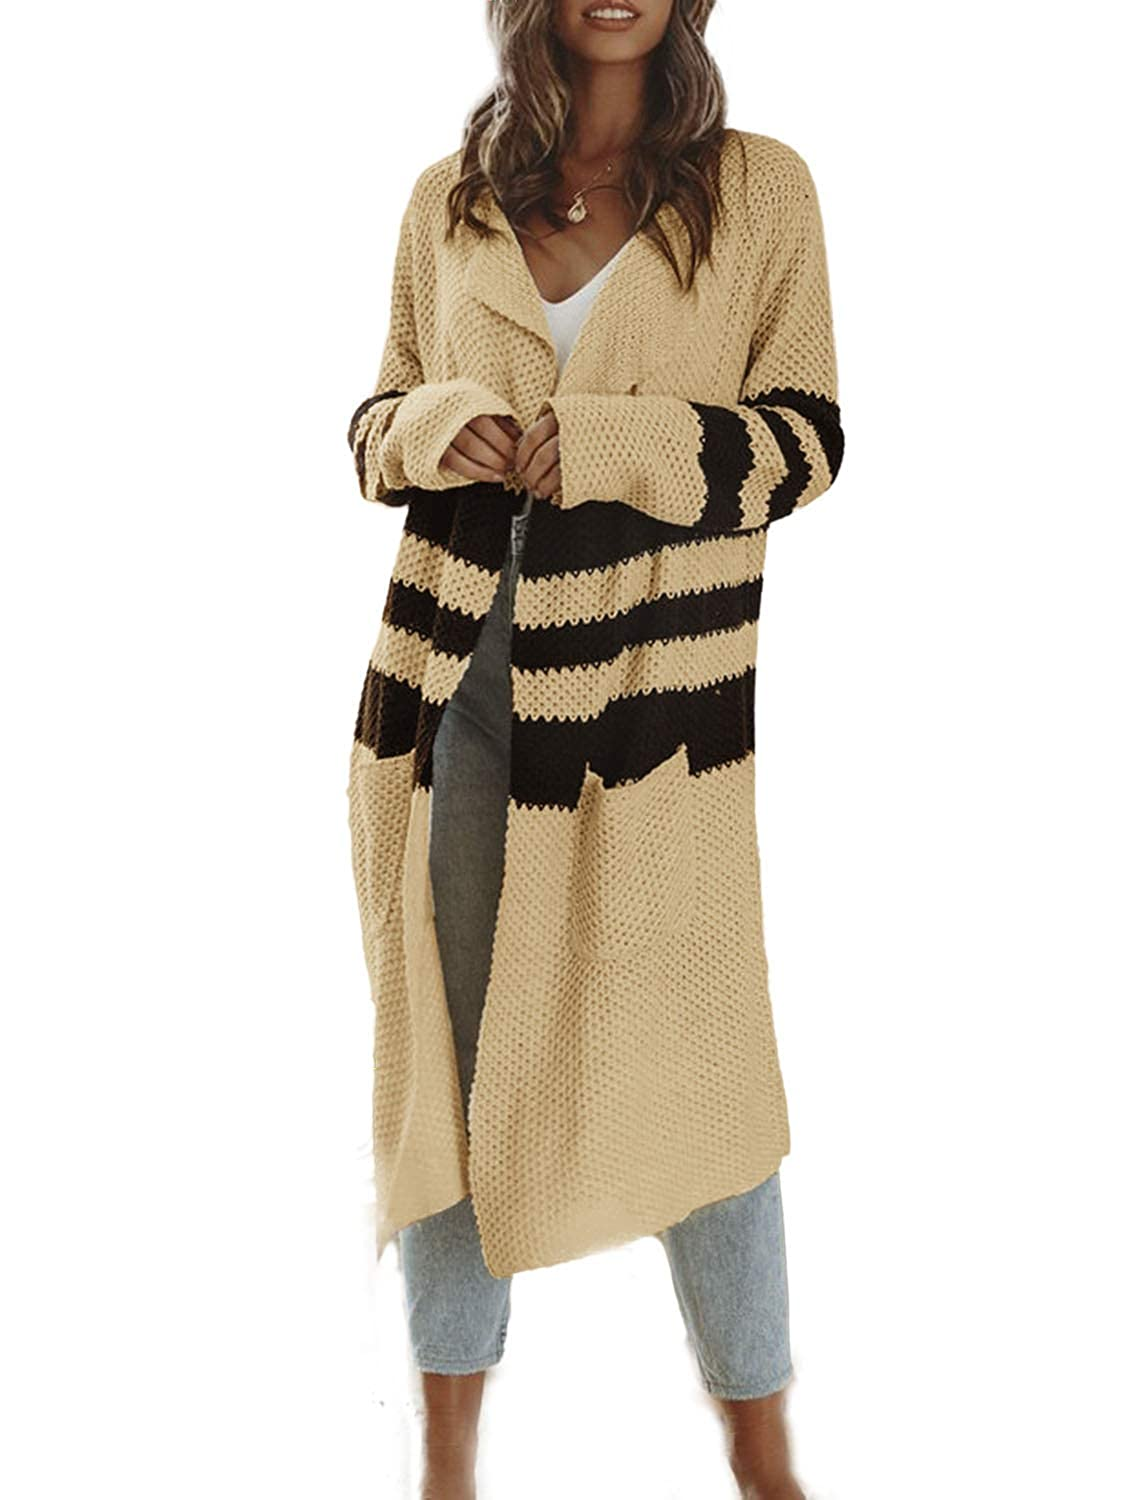 Simplee Womens Casual Open Front Long Sleeve Knit Cardigan Sweater Coat with Pockets